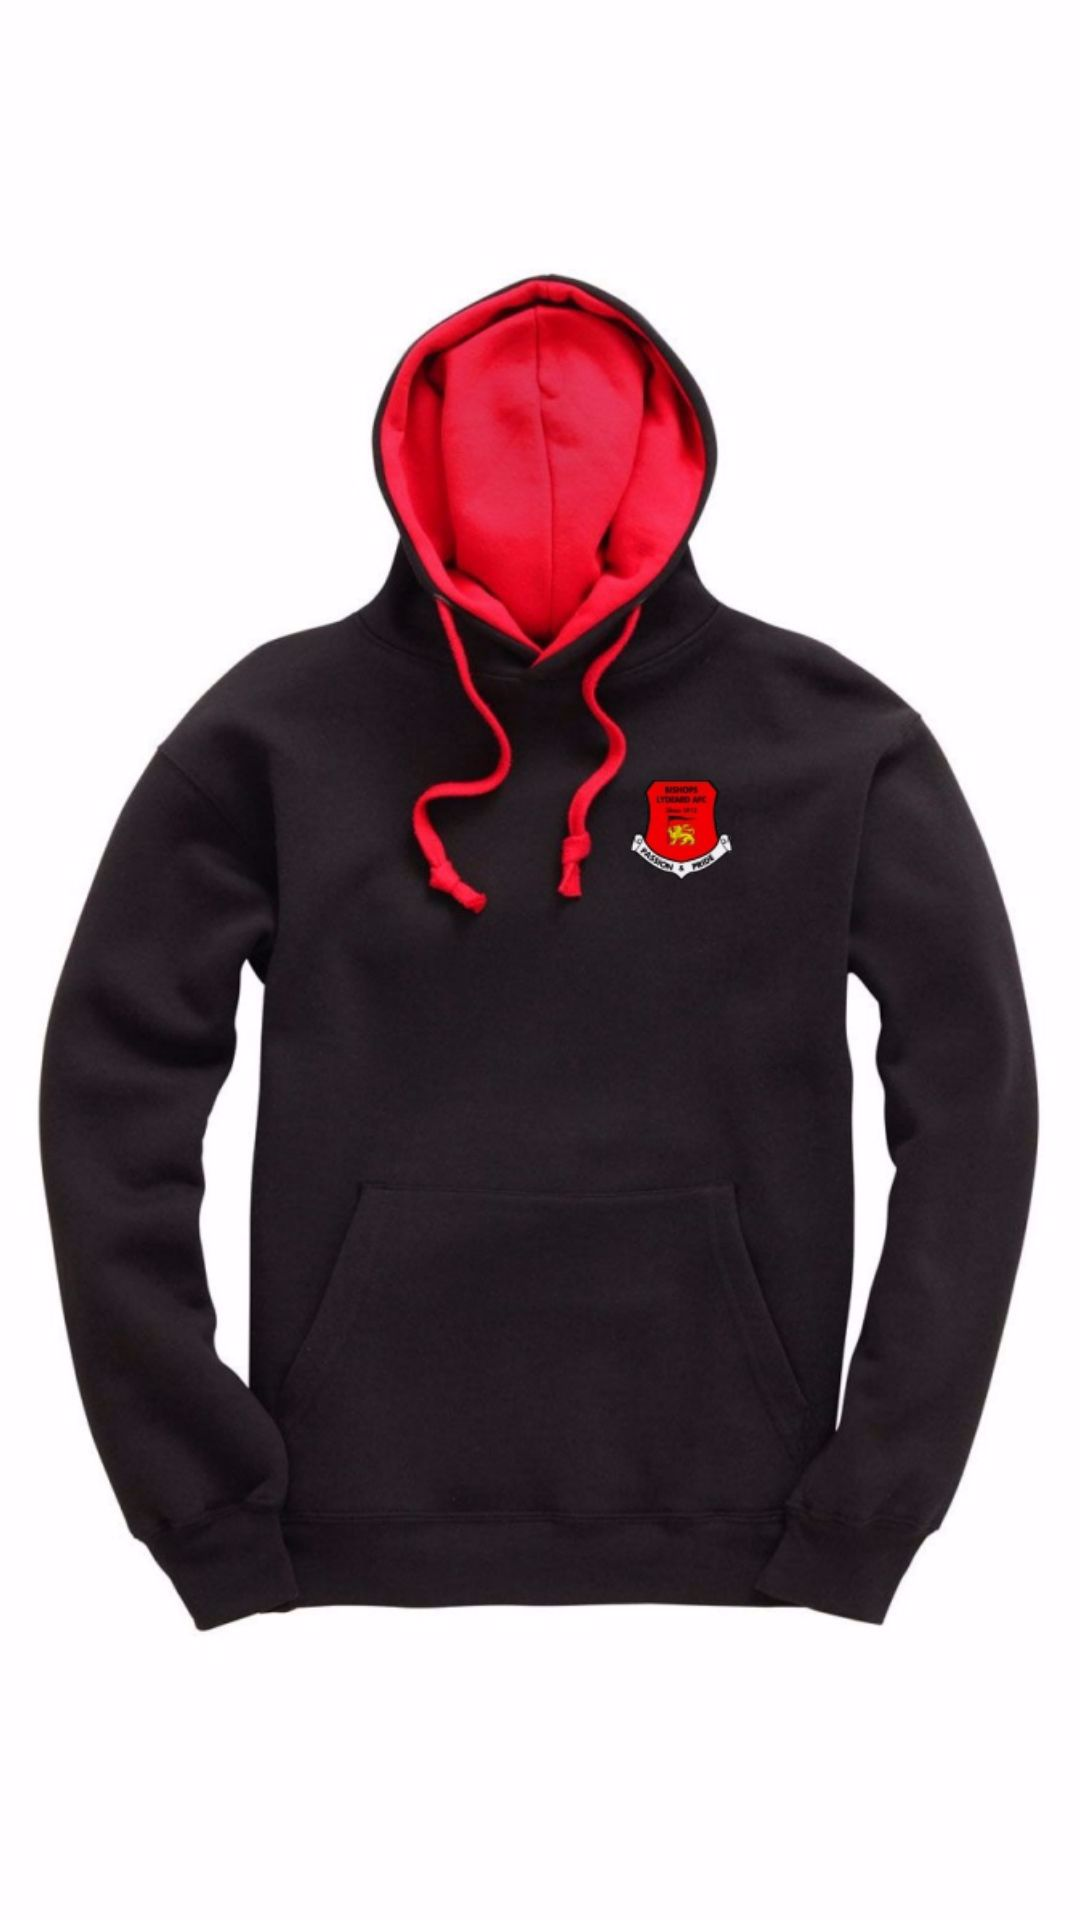 Bishops Lydeard FC Hoody - ADULT Sizes